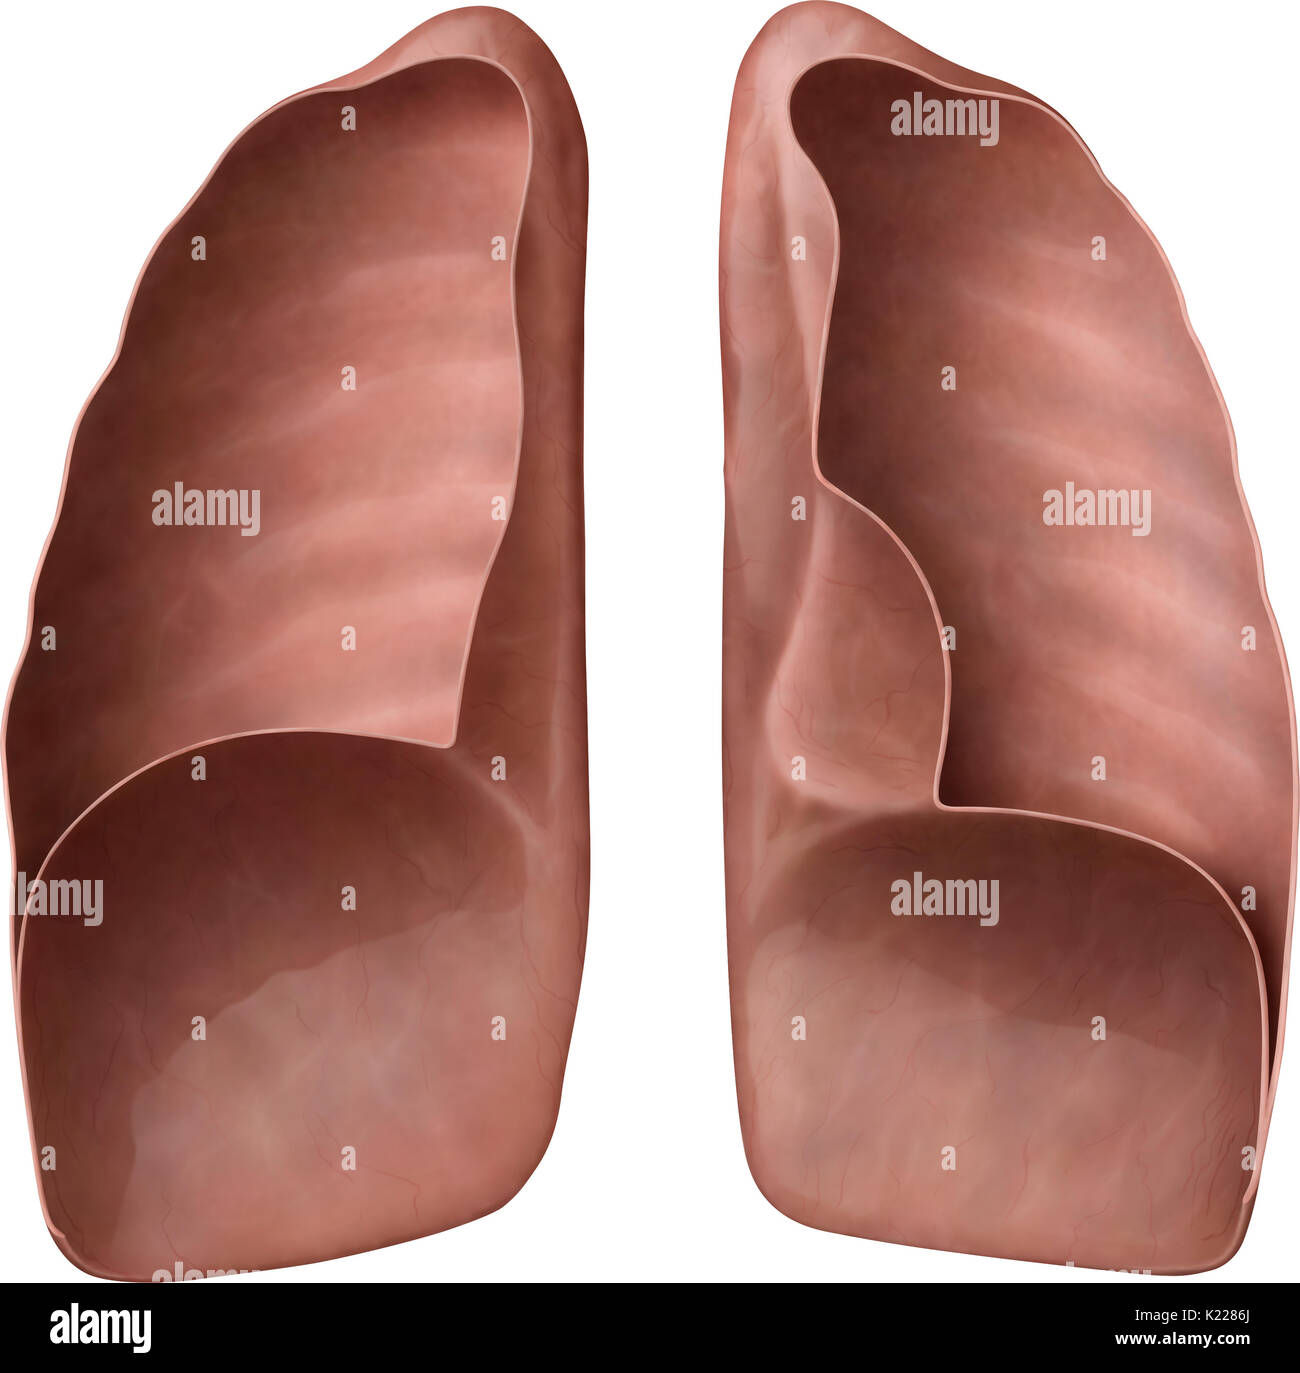 Respiratory organs formed of extensible tissue, in which air from the nasal and oral cavities is carried, ensuring oxygenation of the blood. - Stock Image